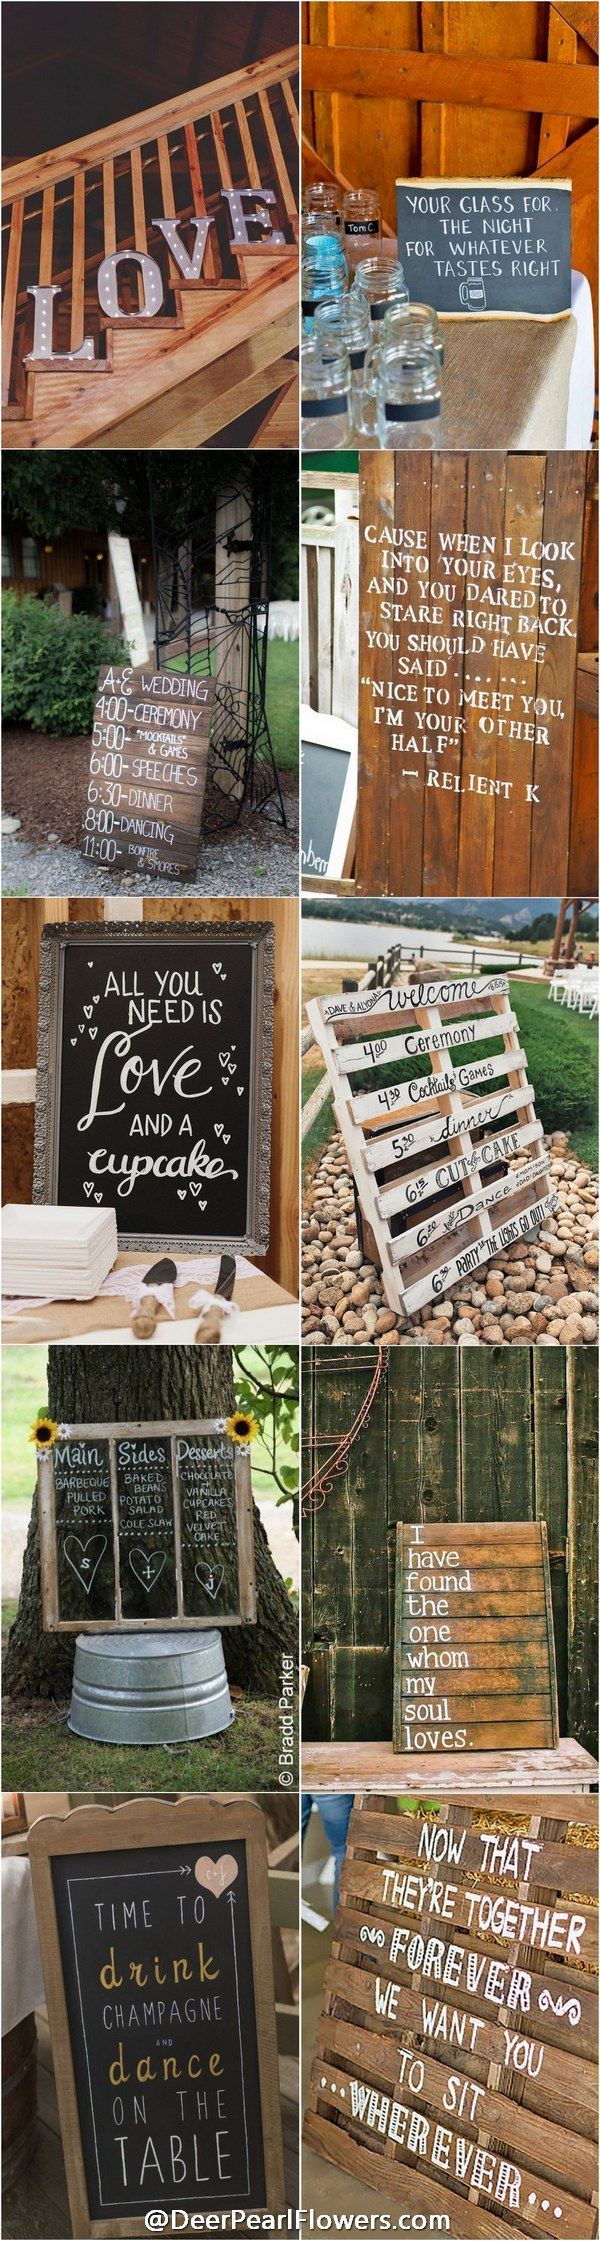 Rustic wedding signs - rustic country wedding ideas / http://www.deerpearlflowers.com/30-rustic-wedding-signs-ideas-for-weddings/